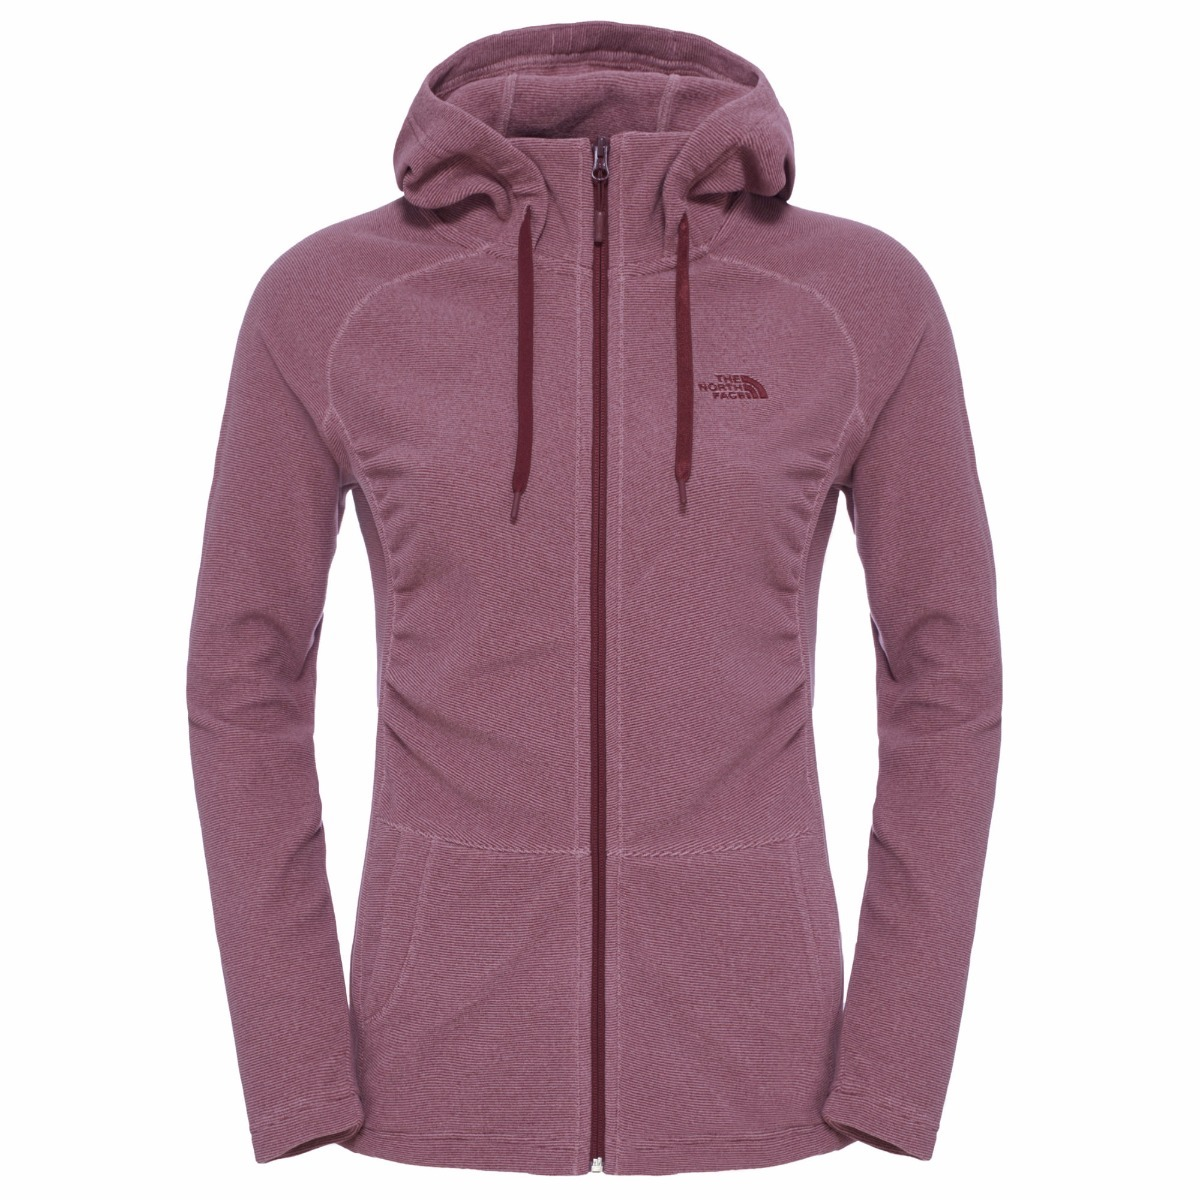 e62c4c393b3f2 Buzo Polar The North Face Mezzaluna Hoodie Mujer Original -   2.300 ...